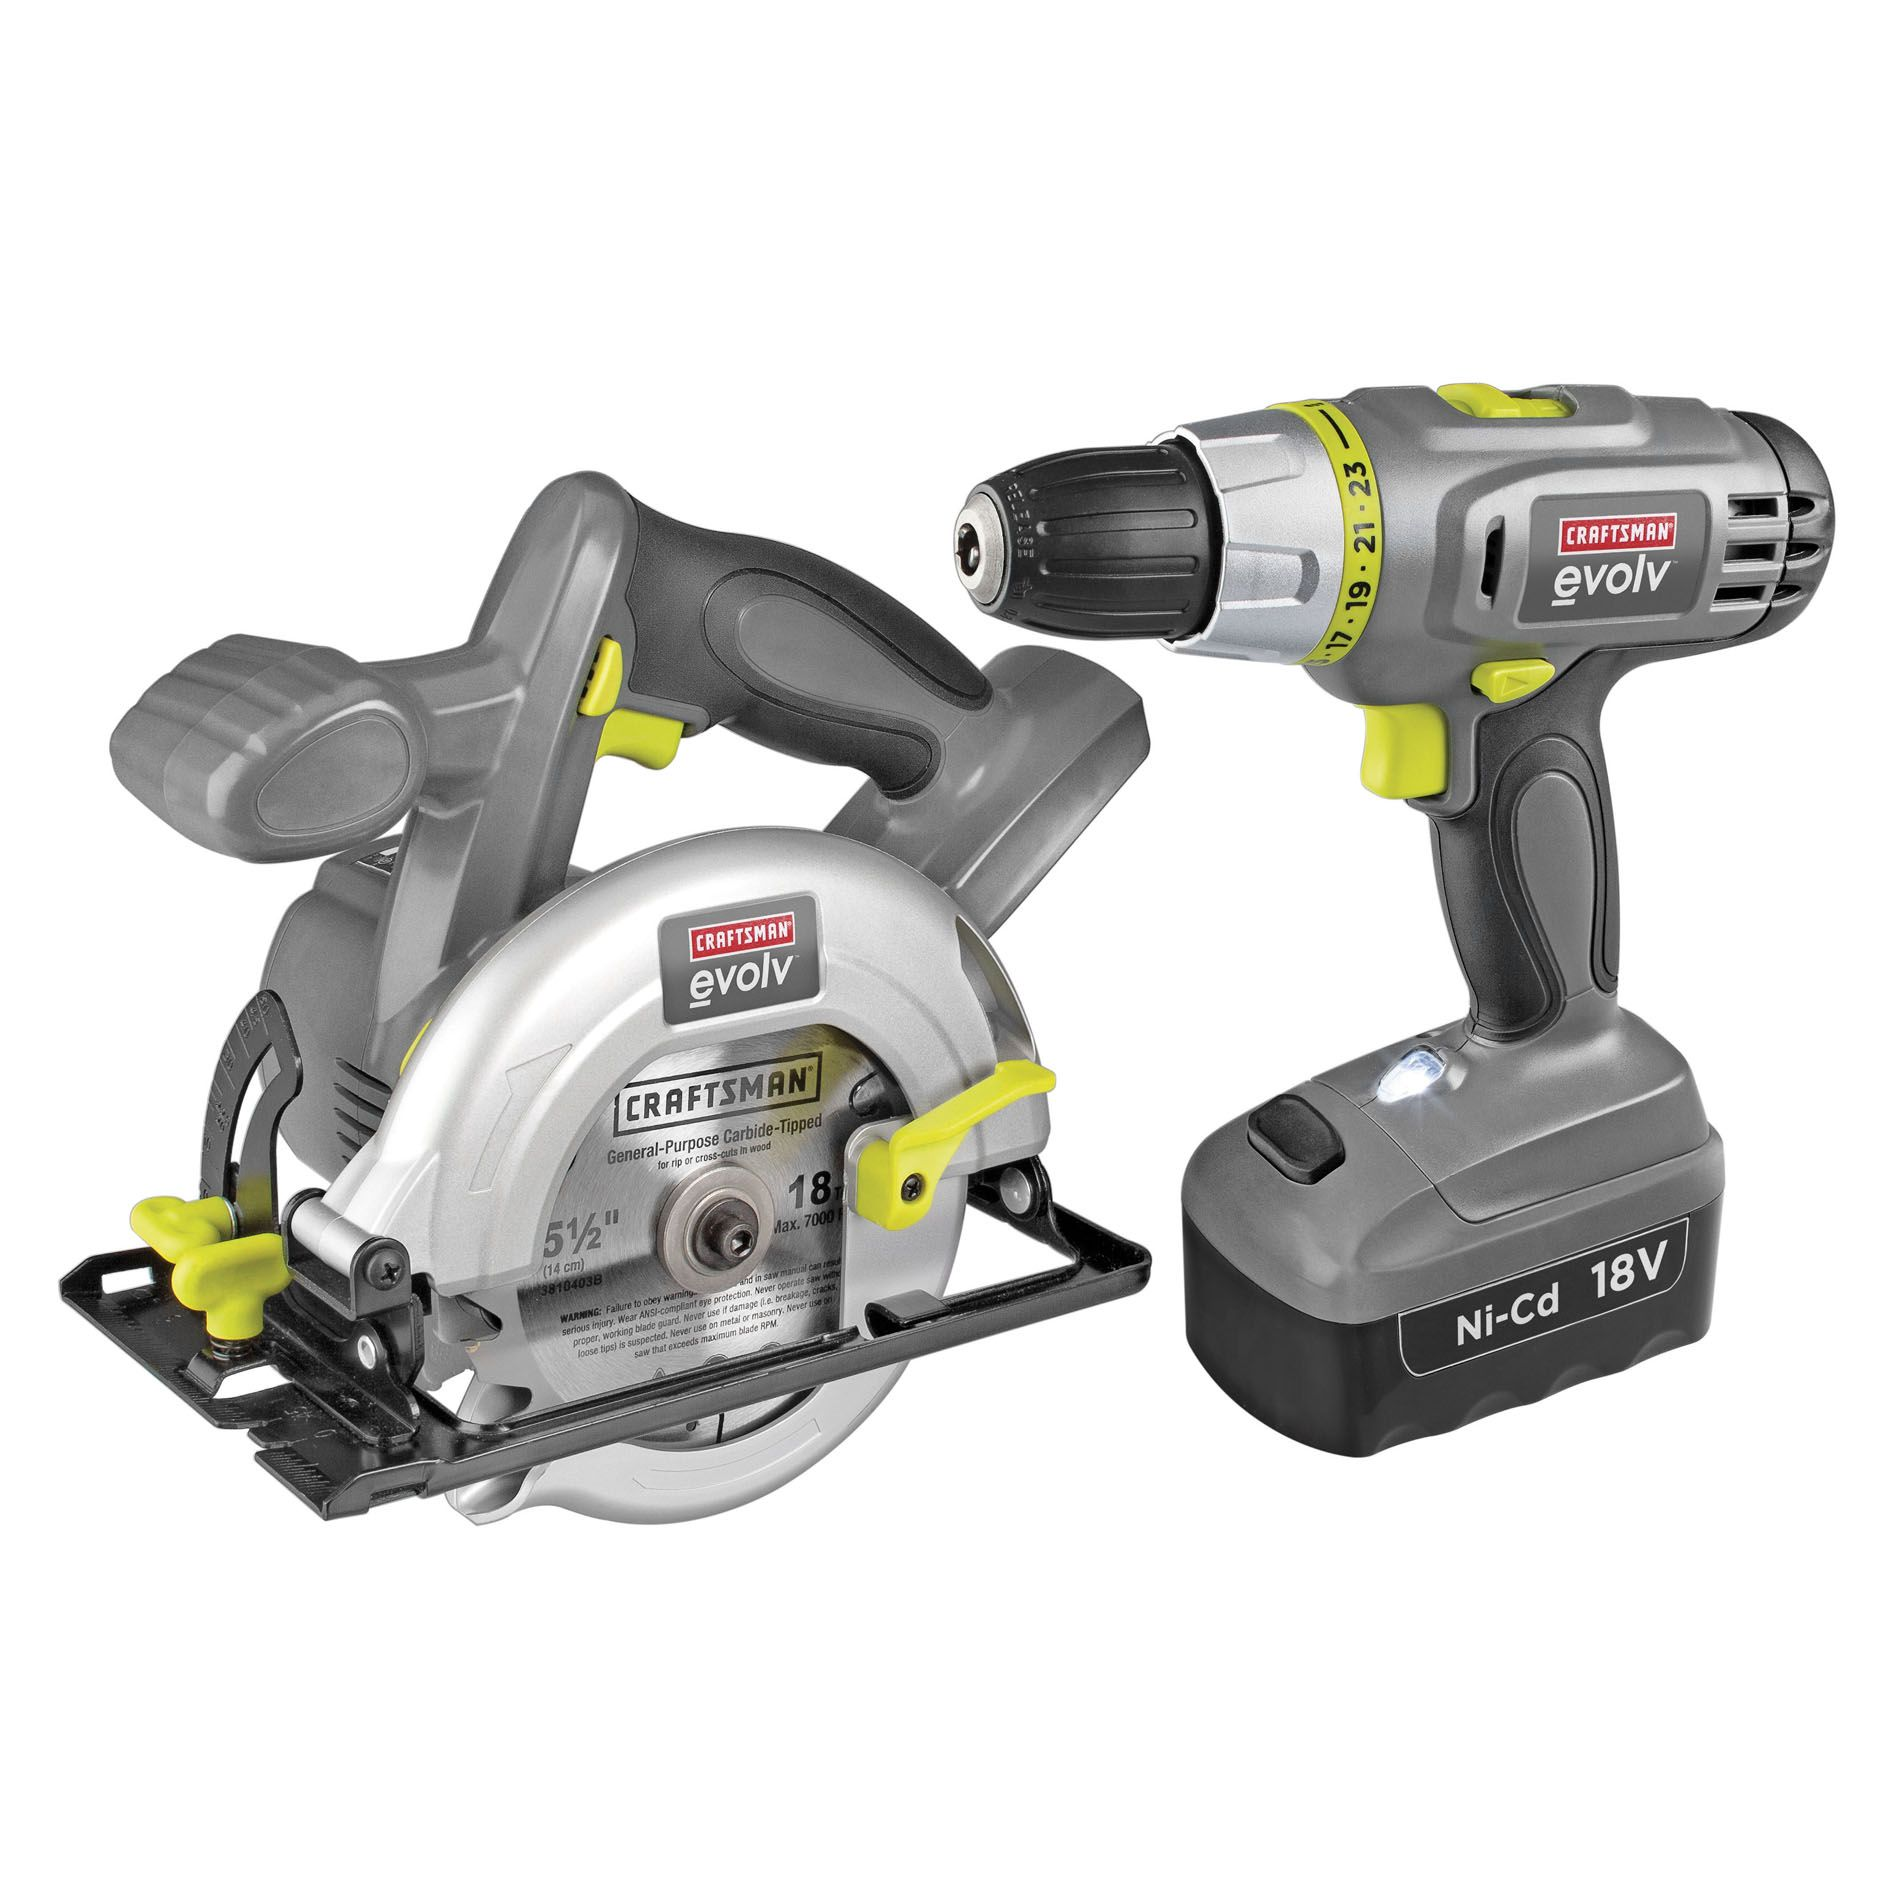 18.0 Volt Cordless Drill and Circular Saw Combo                                                                                  at mygofer.com